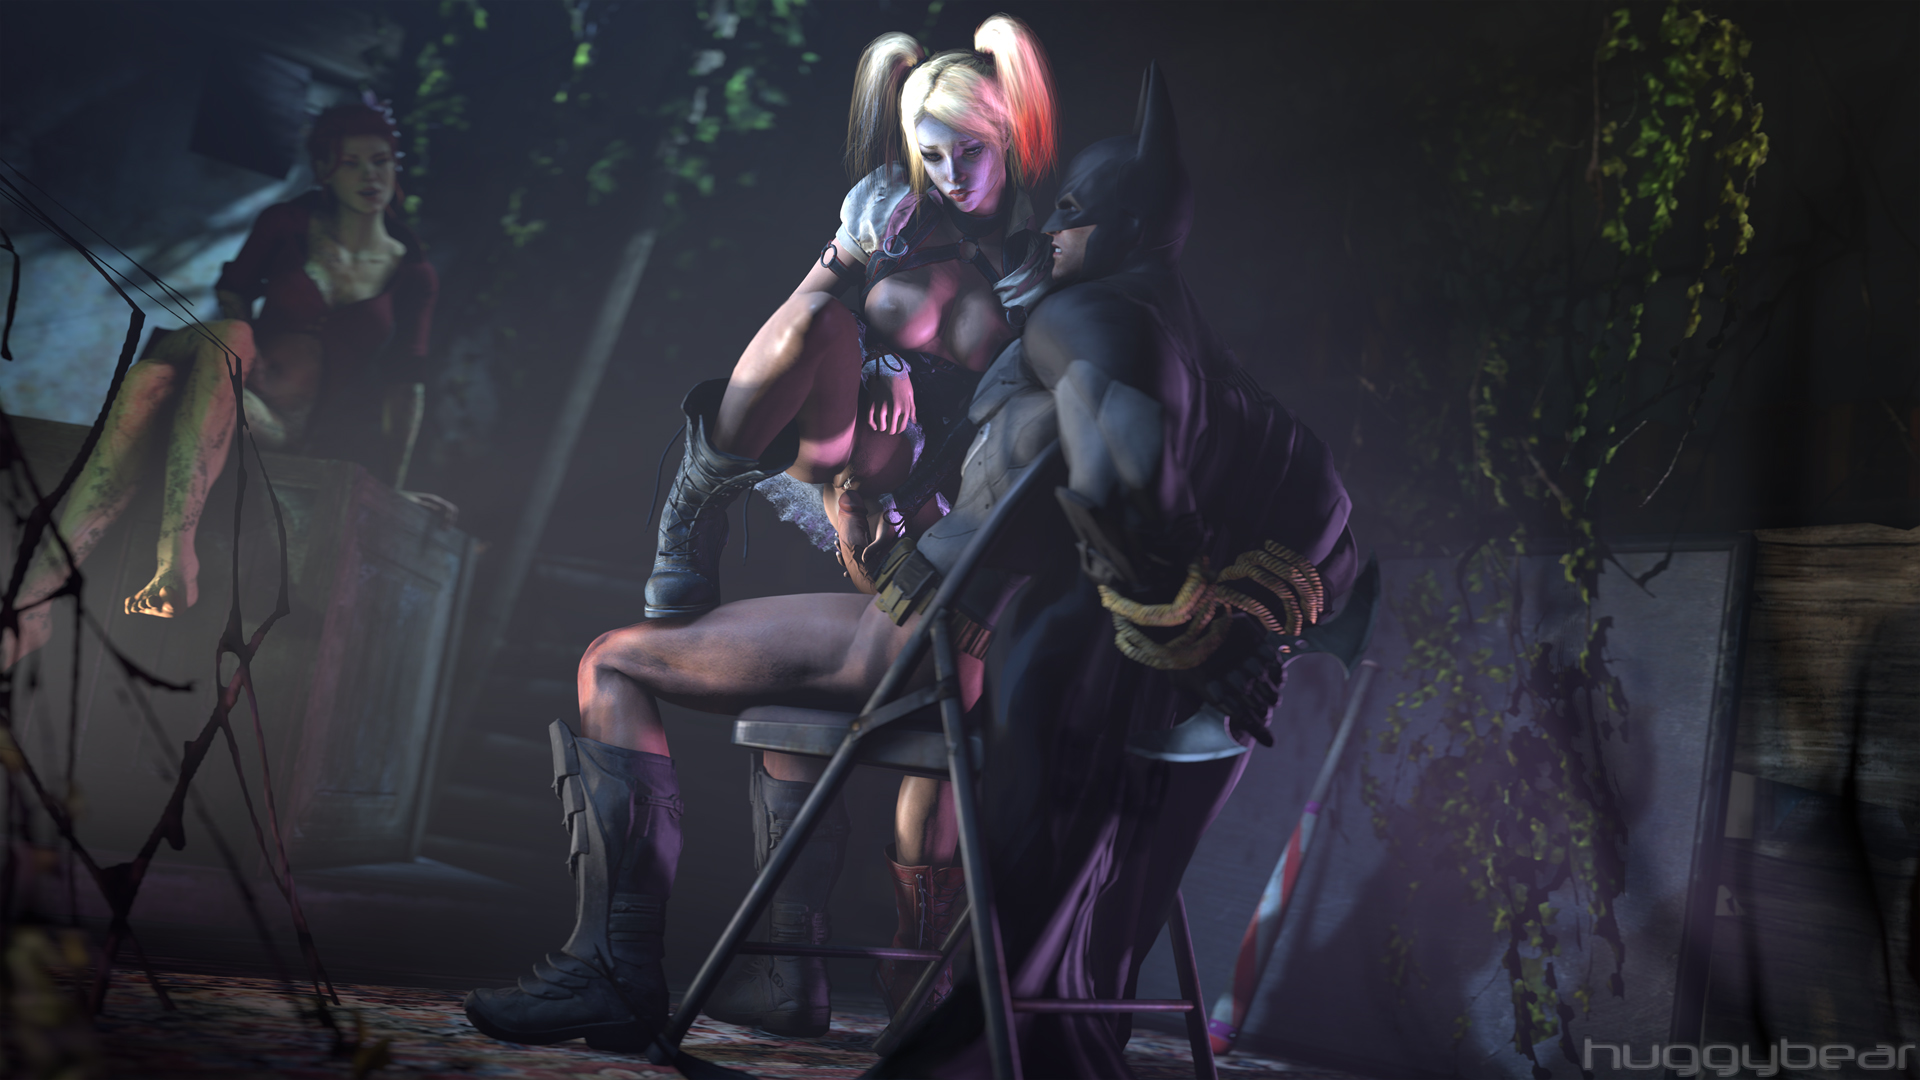 Seems excellent Hot harley quinn upskirt